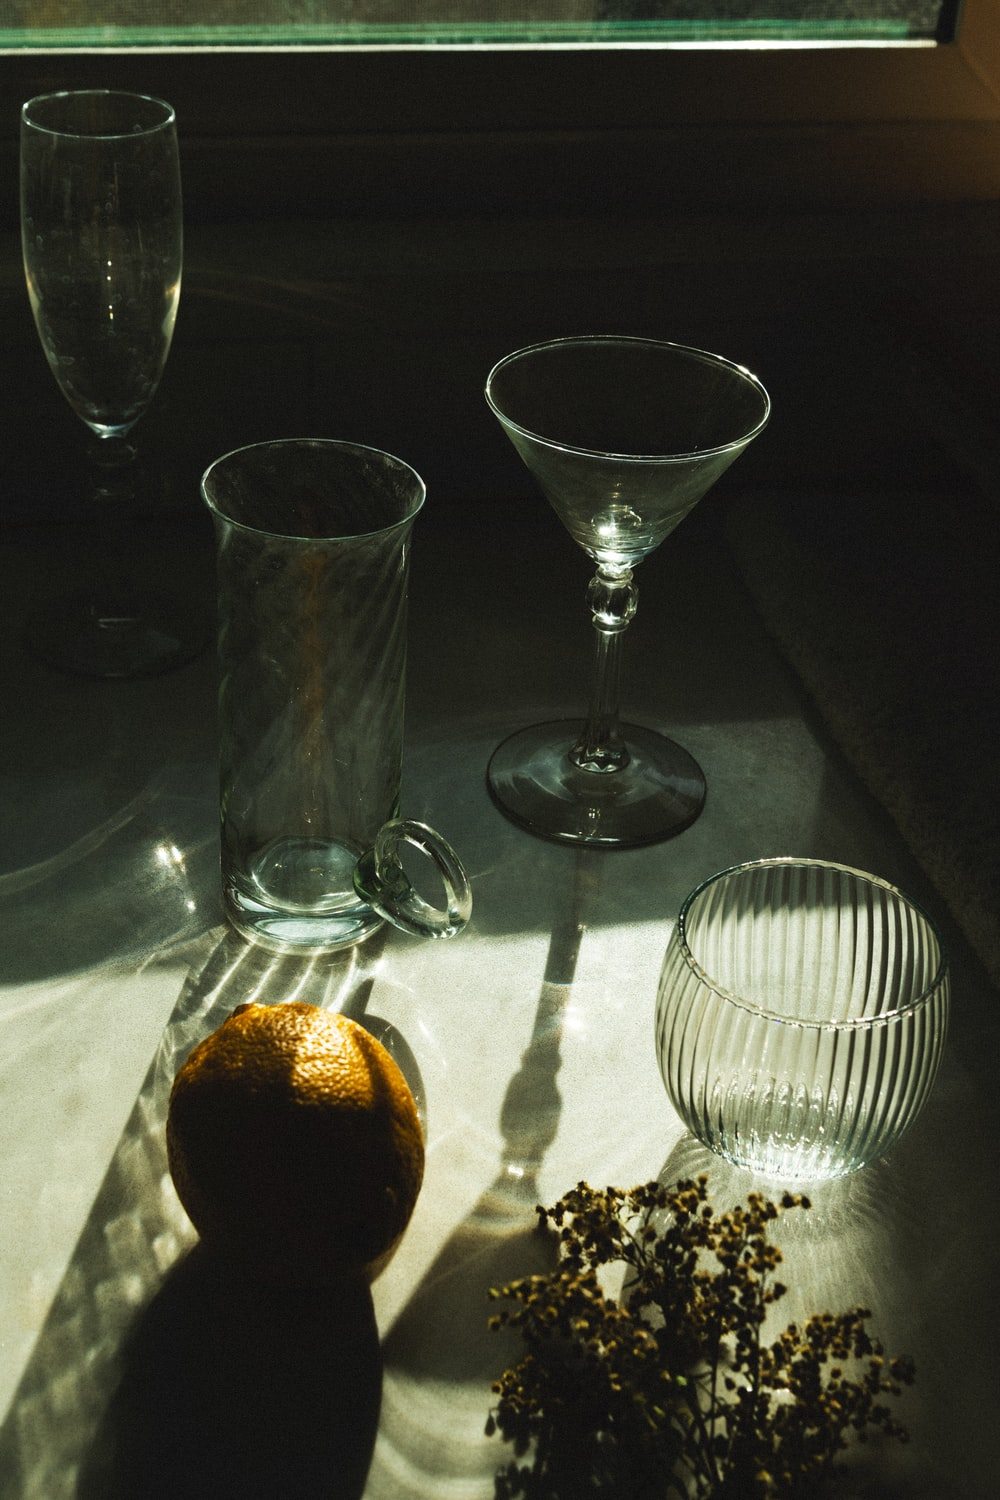 clear wine glass beside clear glass bowl